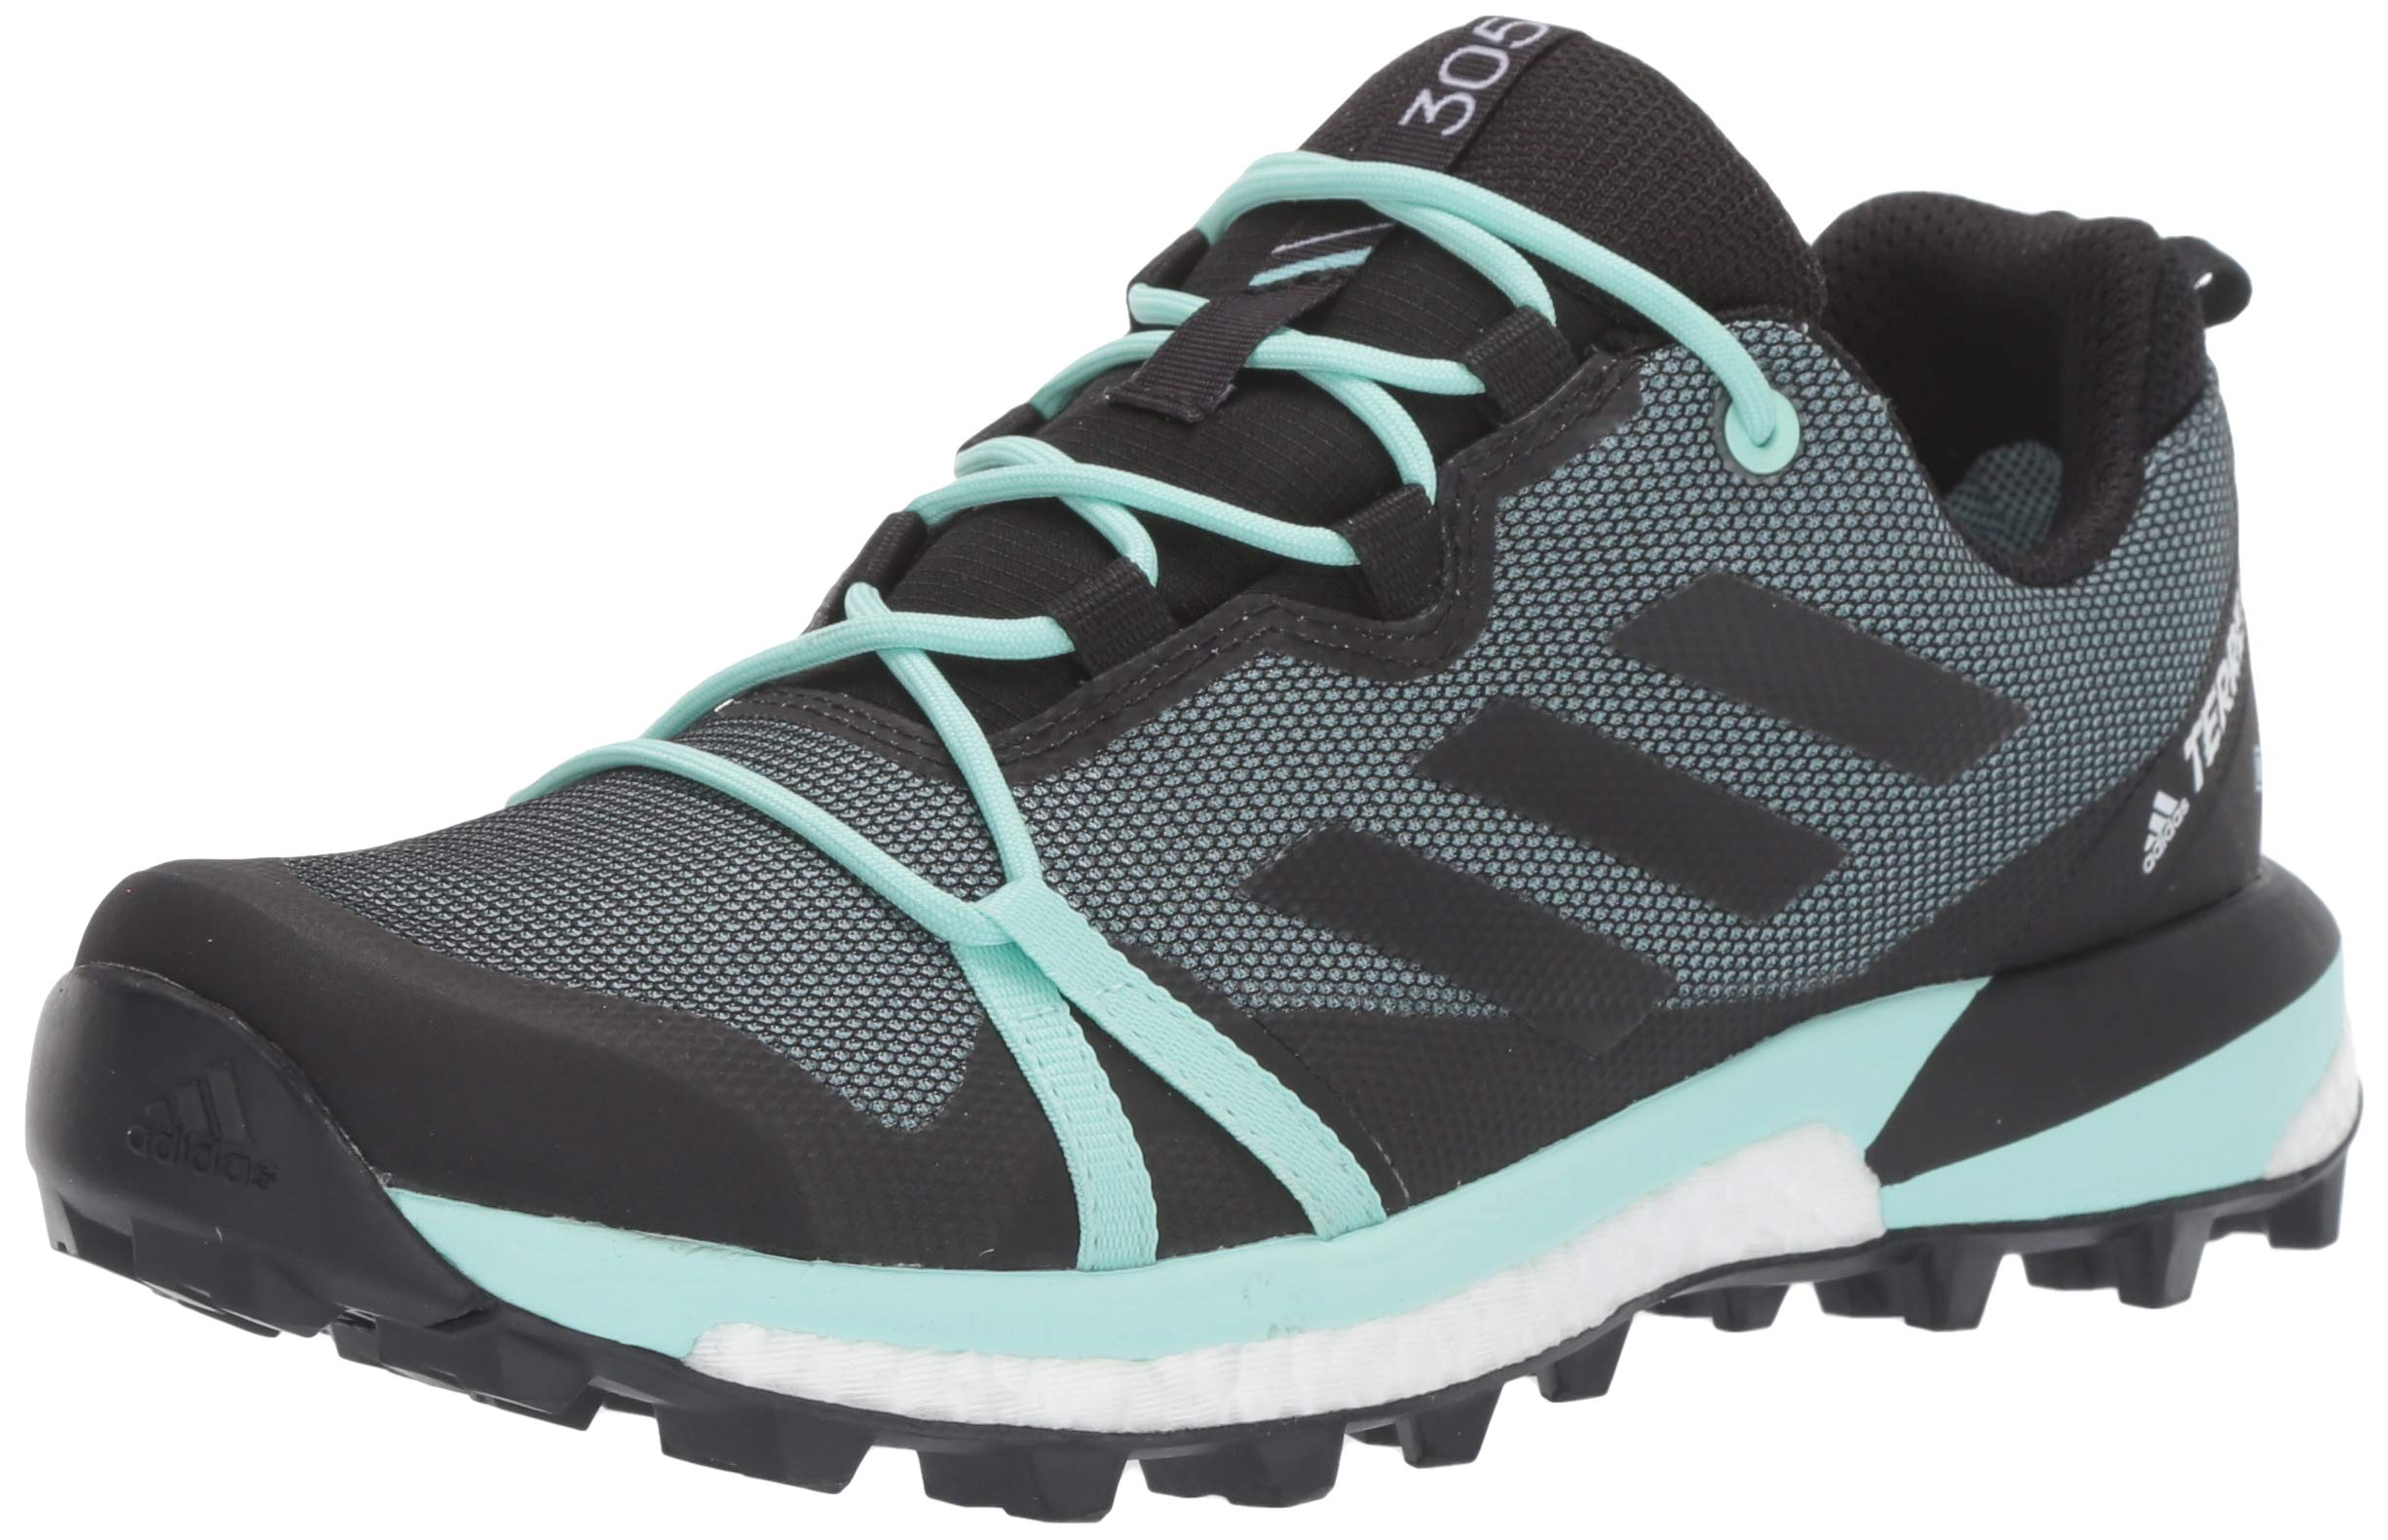 adidas outdoor Women's Terrex Skychaser LT GTX Athletic Shoe, ASH Grey/Black/Clear Mint, 6 M US by adidas outdoor